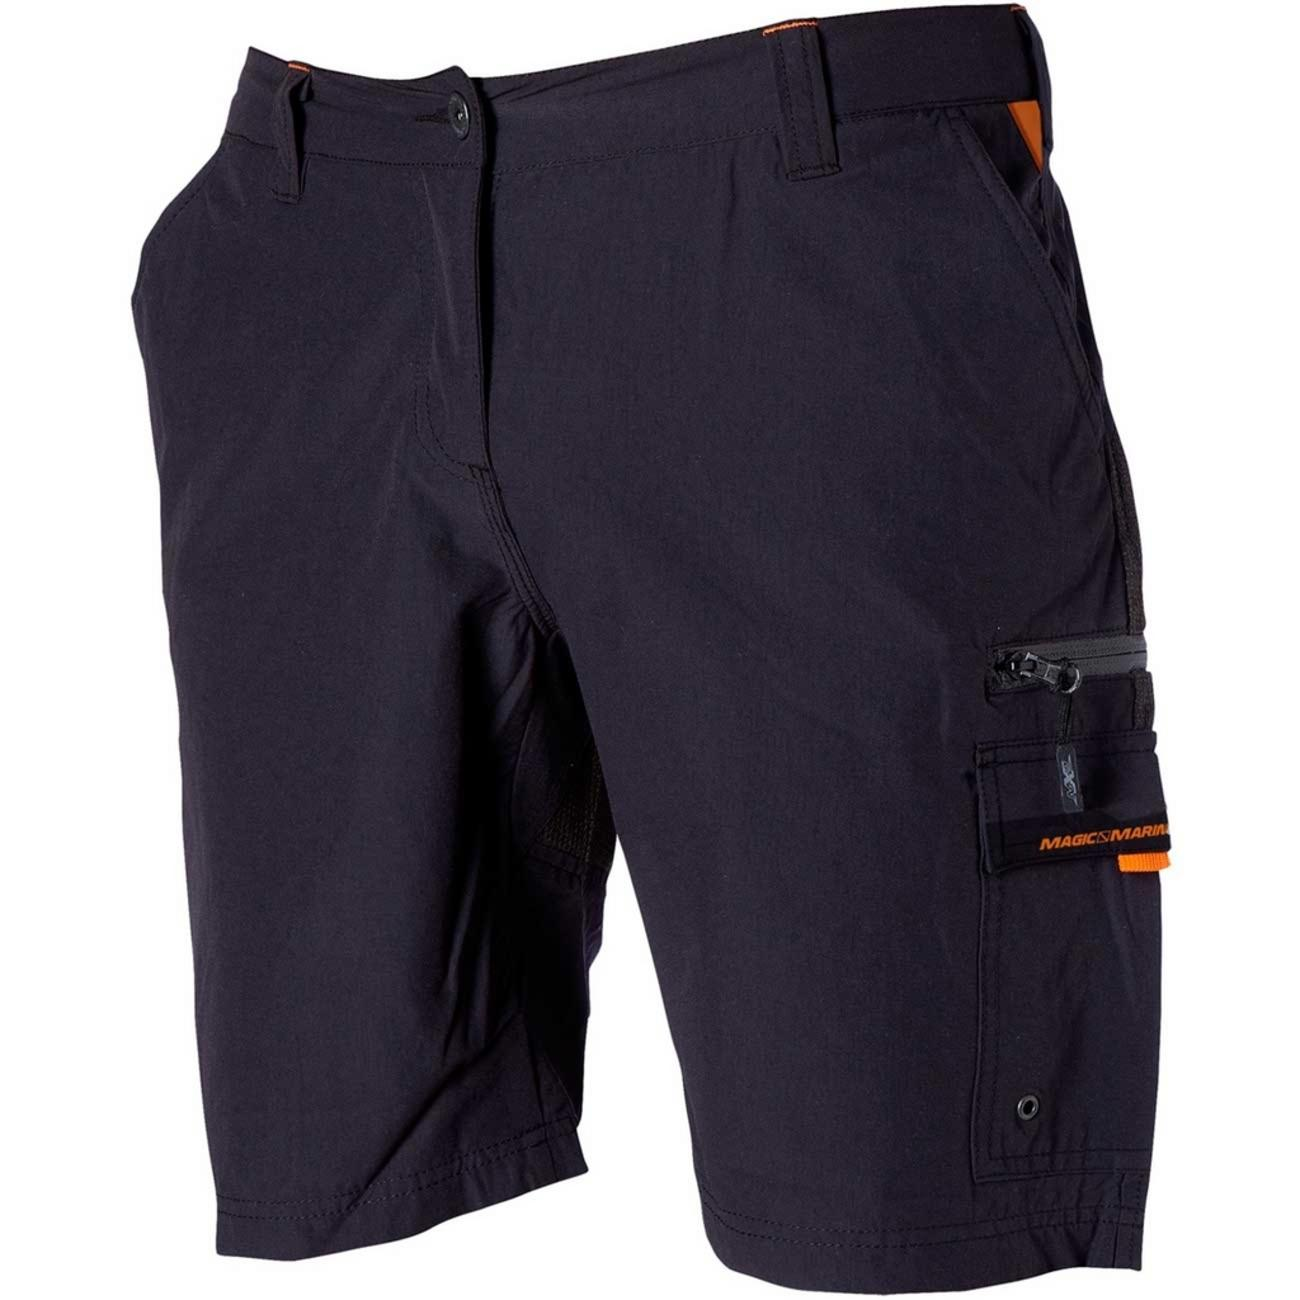 CLOUD RACING WALKSHORT